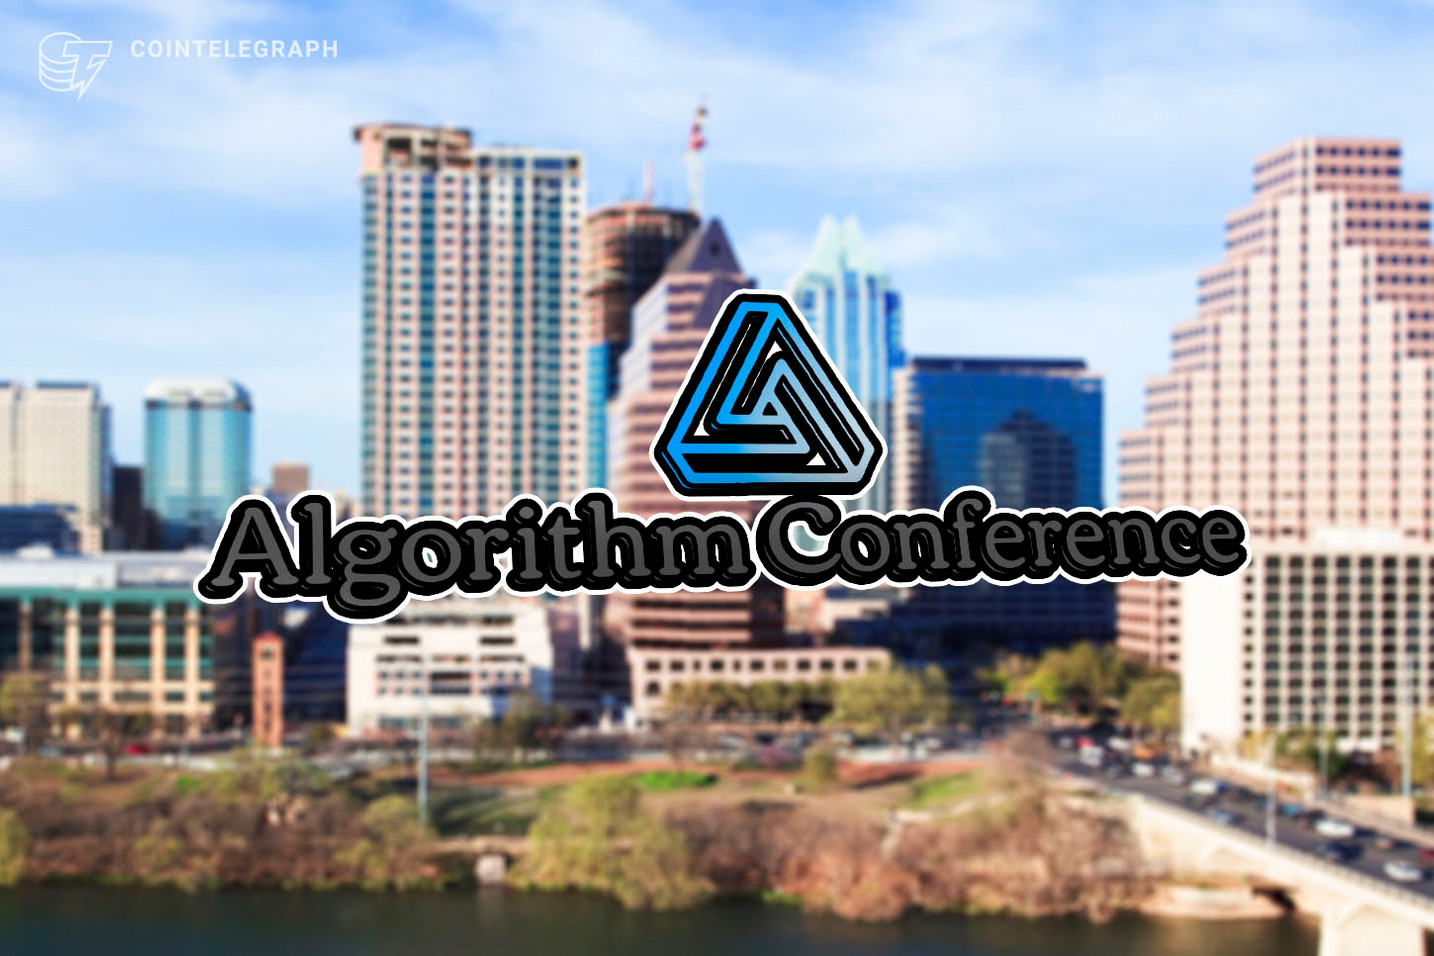 Algorithm Conference, June 16 – 18, 2020, Austin, Texas